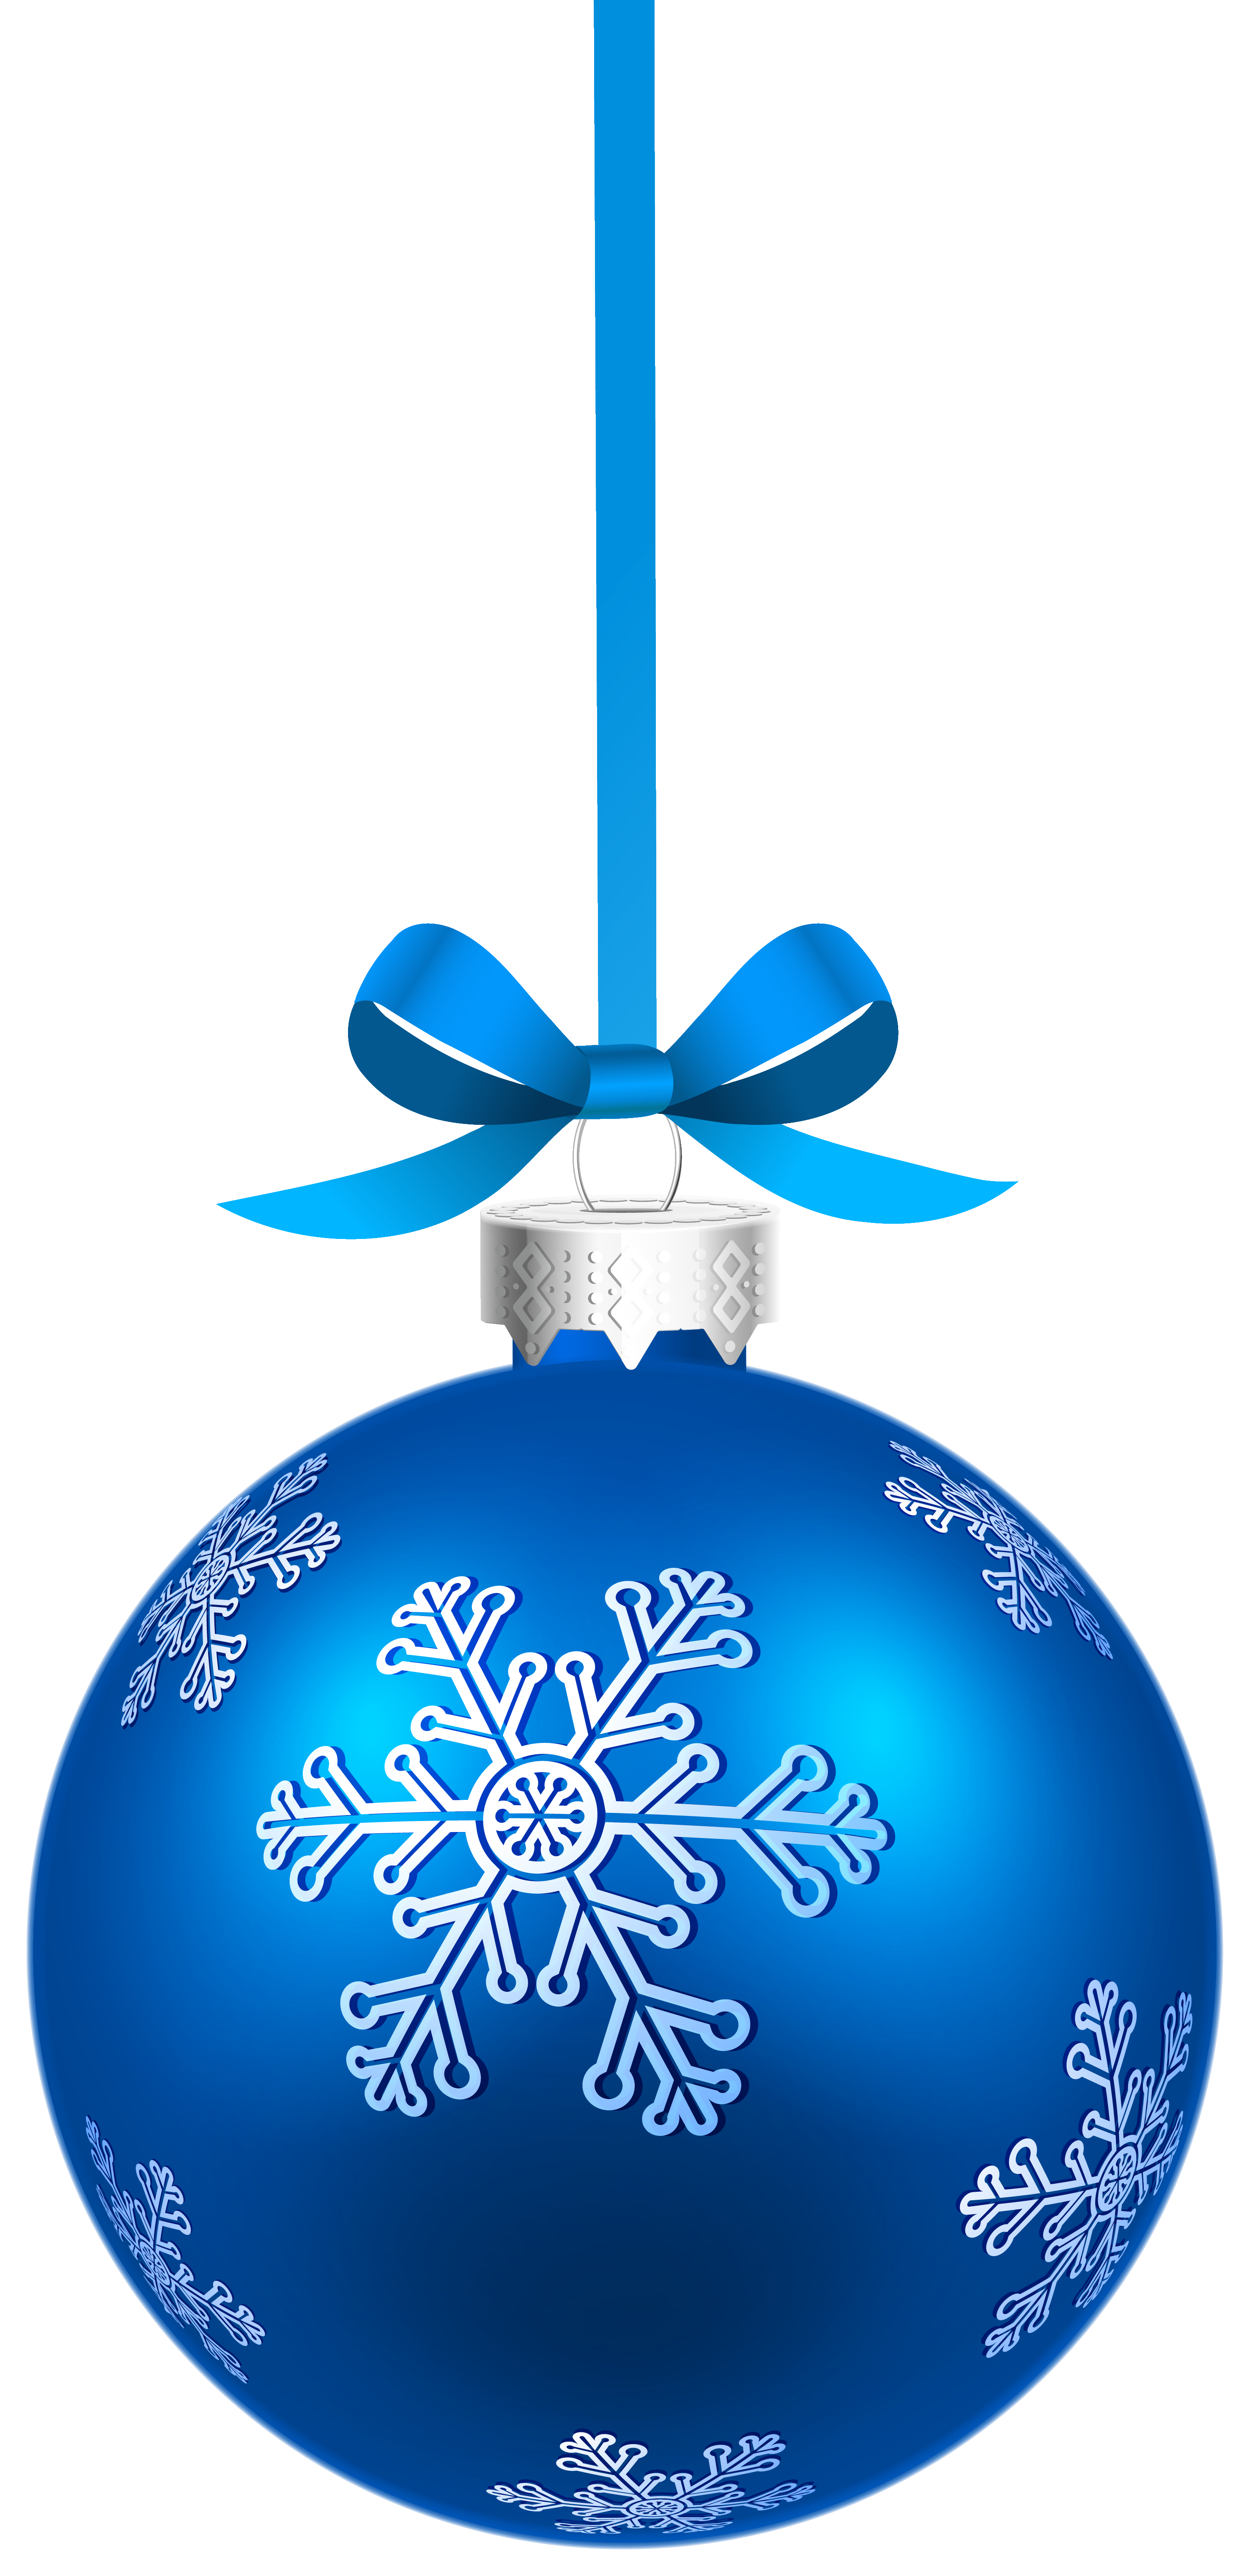 Christmas snowflakes png. Blue hanging ball with